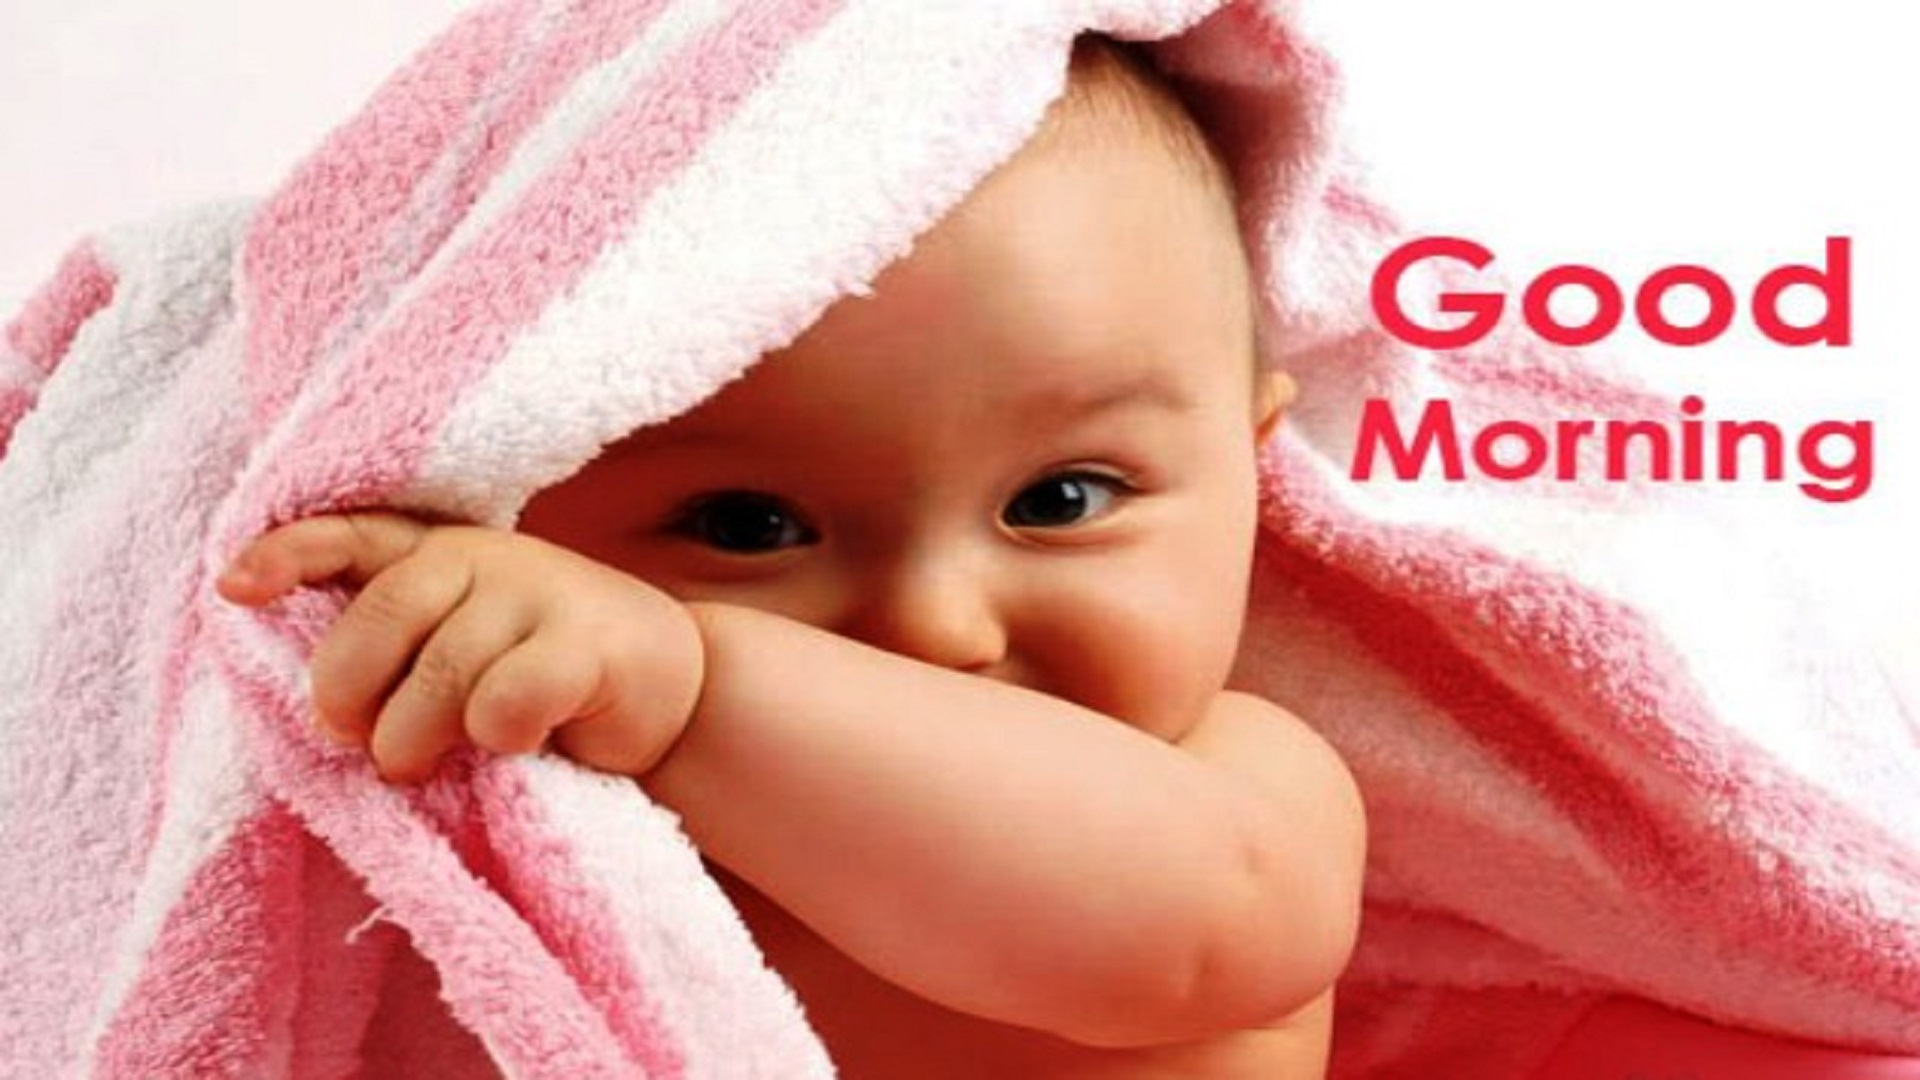 Baby Saying Hd Good Morning Wallpapers Images Free